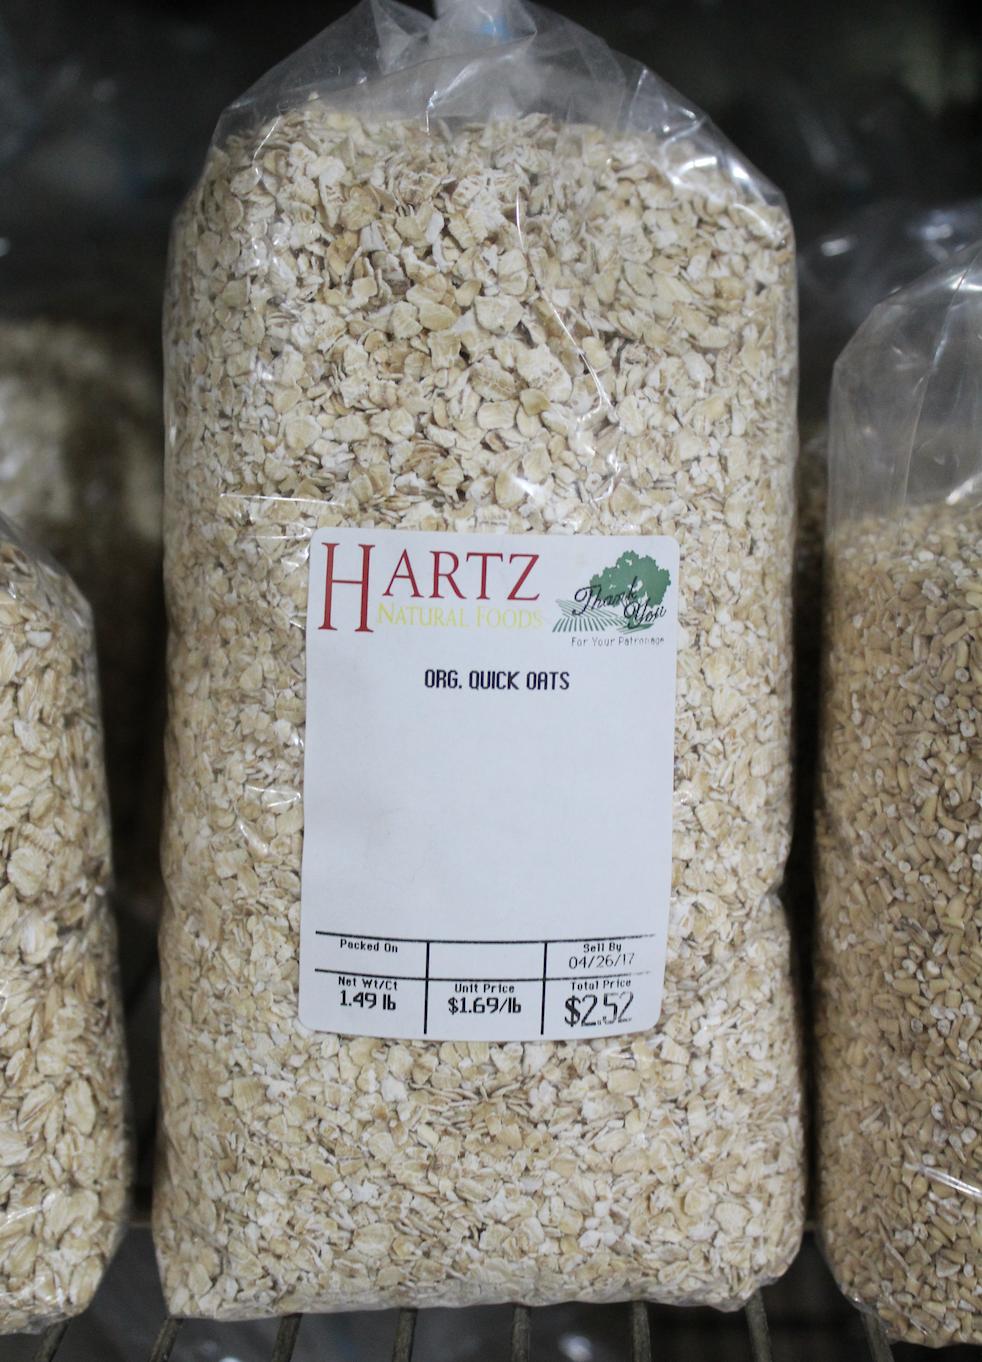 Hartz Natural Foods Morgantown PAlocal organic produce farm-raised beef chicken sustainable fishNon-GMO foodoptions herbal remedies all-natural cleaning products spice racklocal meat selection local granola local soaps local produce